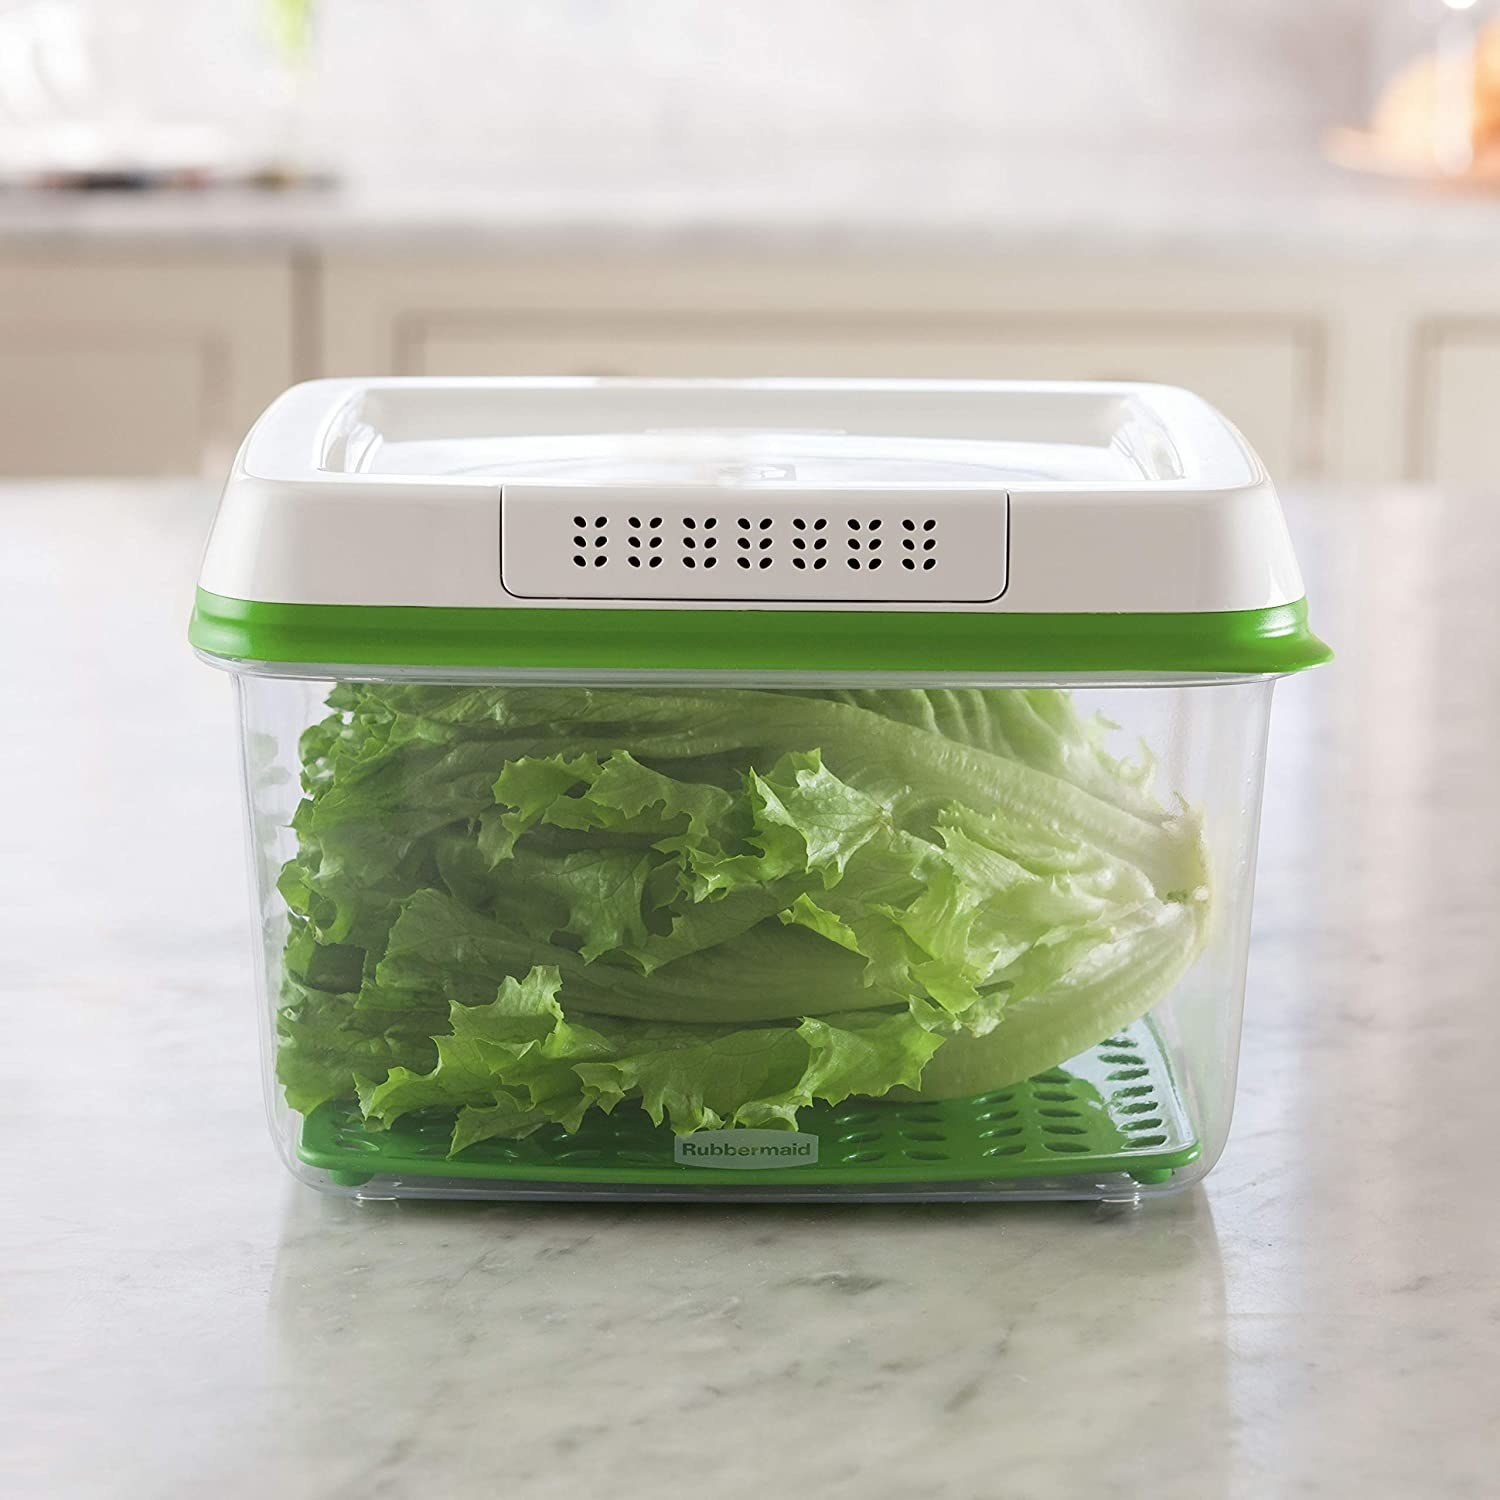 a Rubbermaid container holding fresh lettuce inside